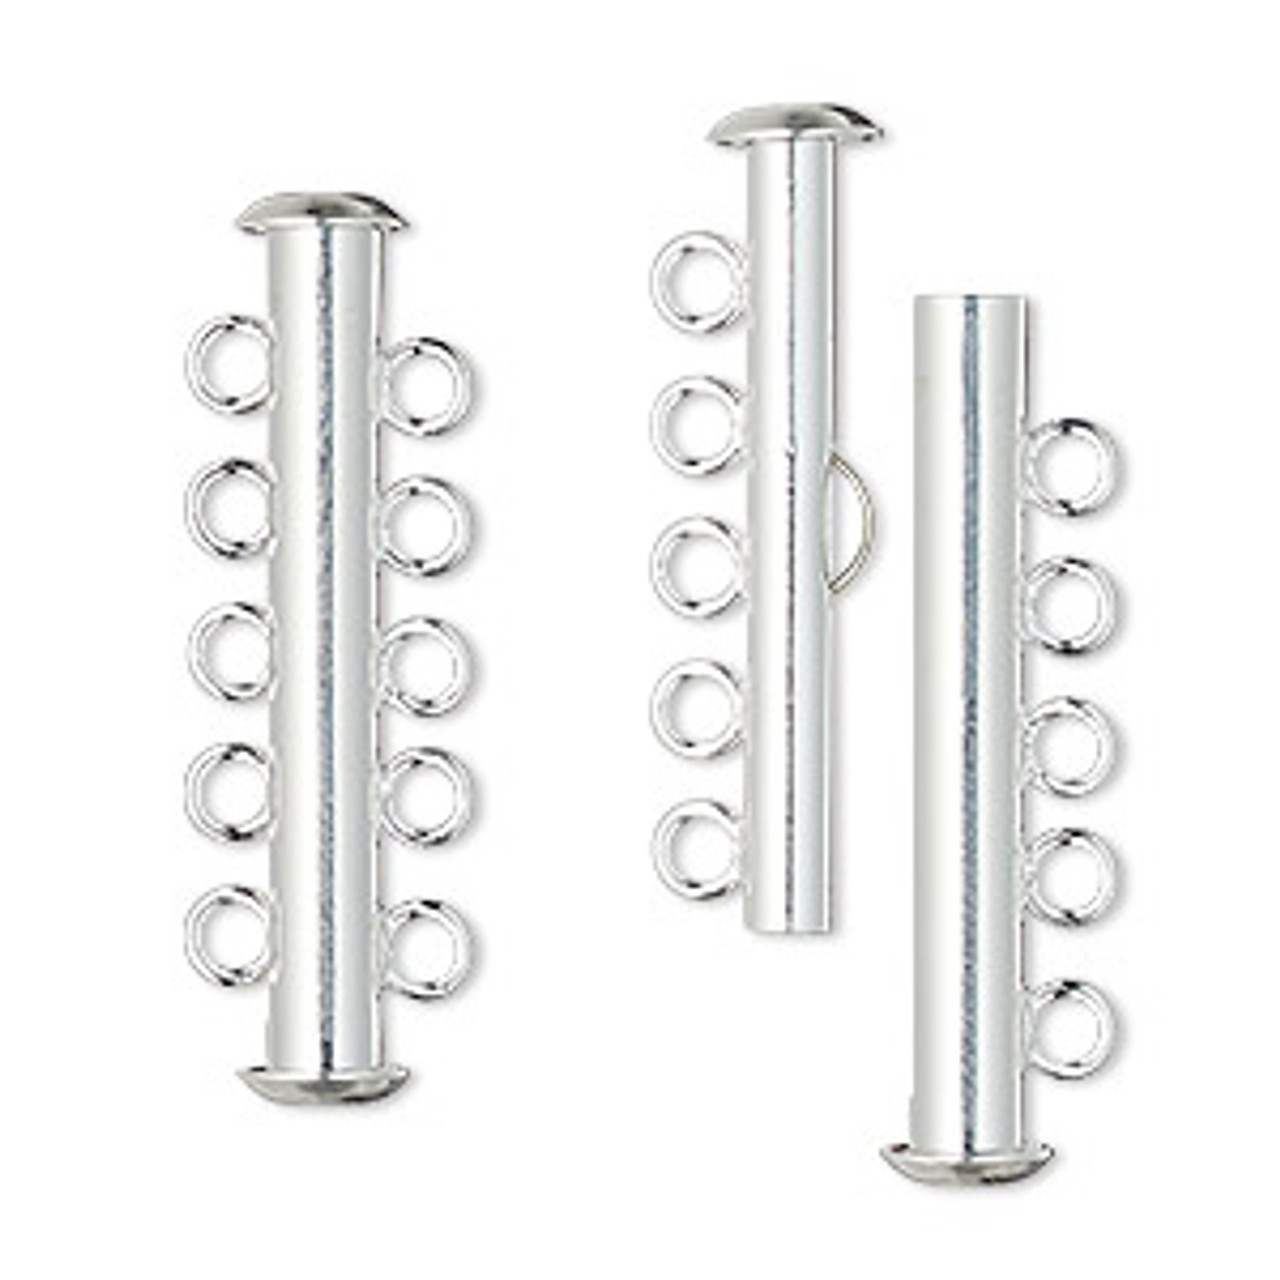 5 Strand Silver Plated Slide Clasp